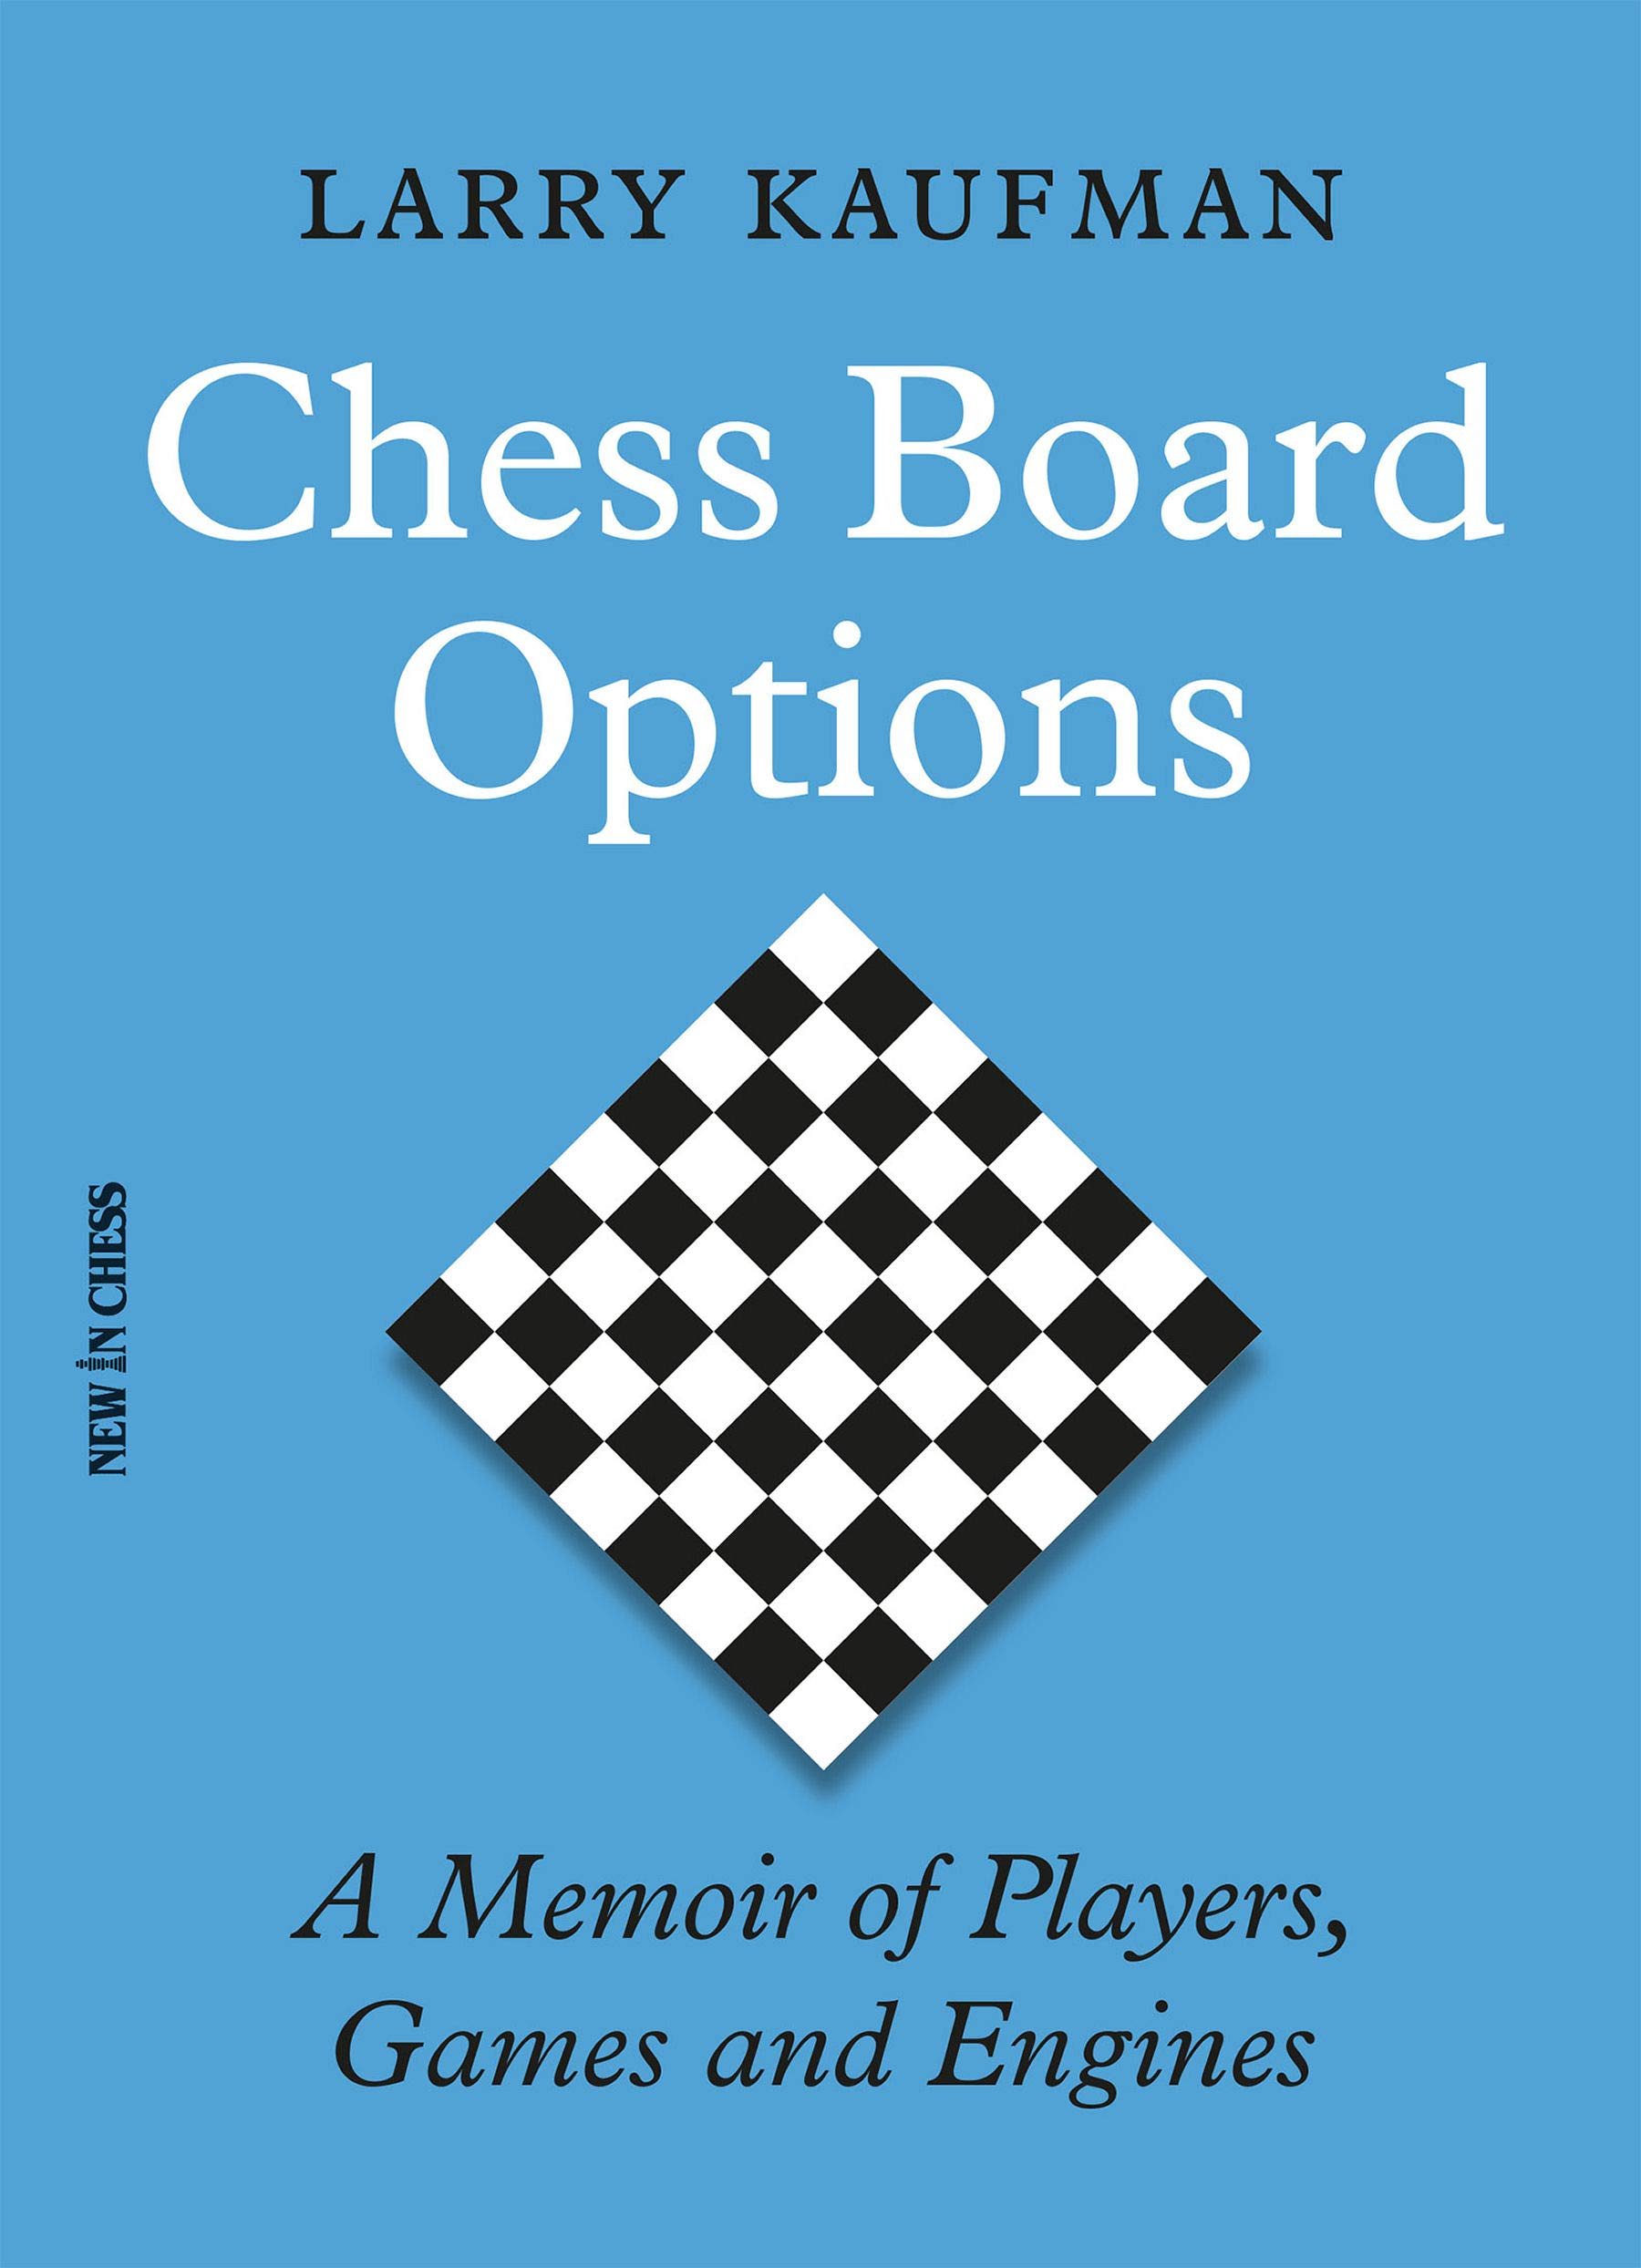 Chess Board Options, Larry Kaufman, New in Chess, 15th July 2021, ISBN-13  :  978-9056919337